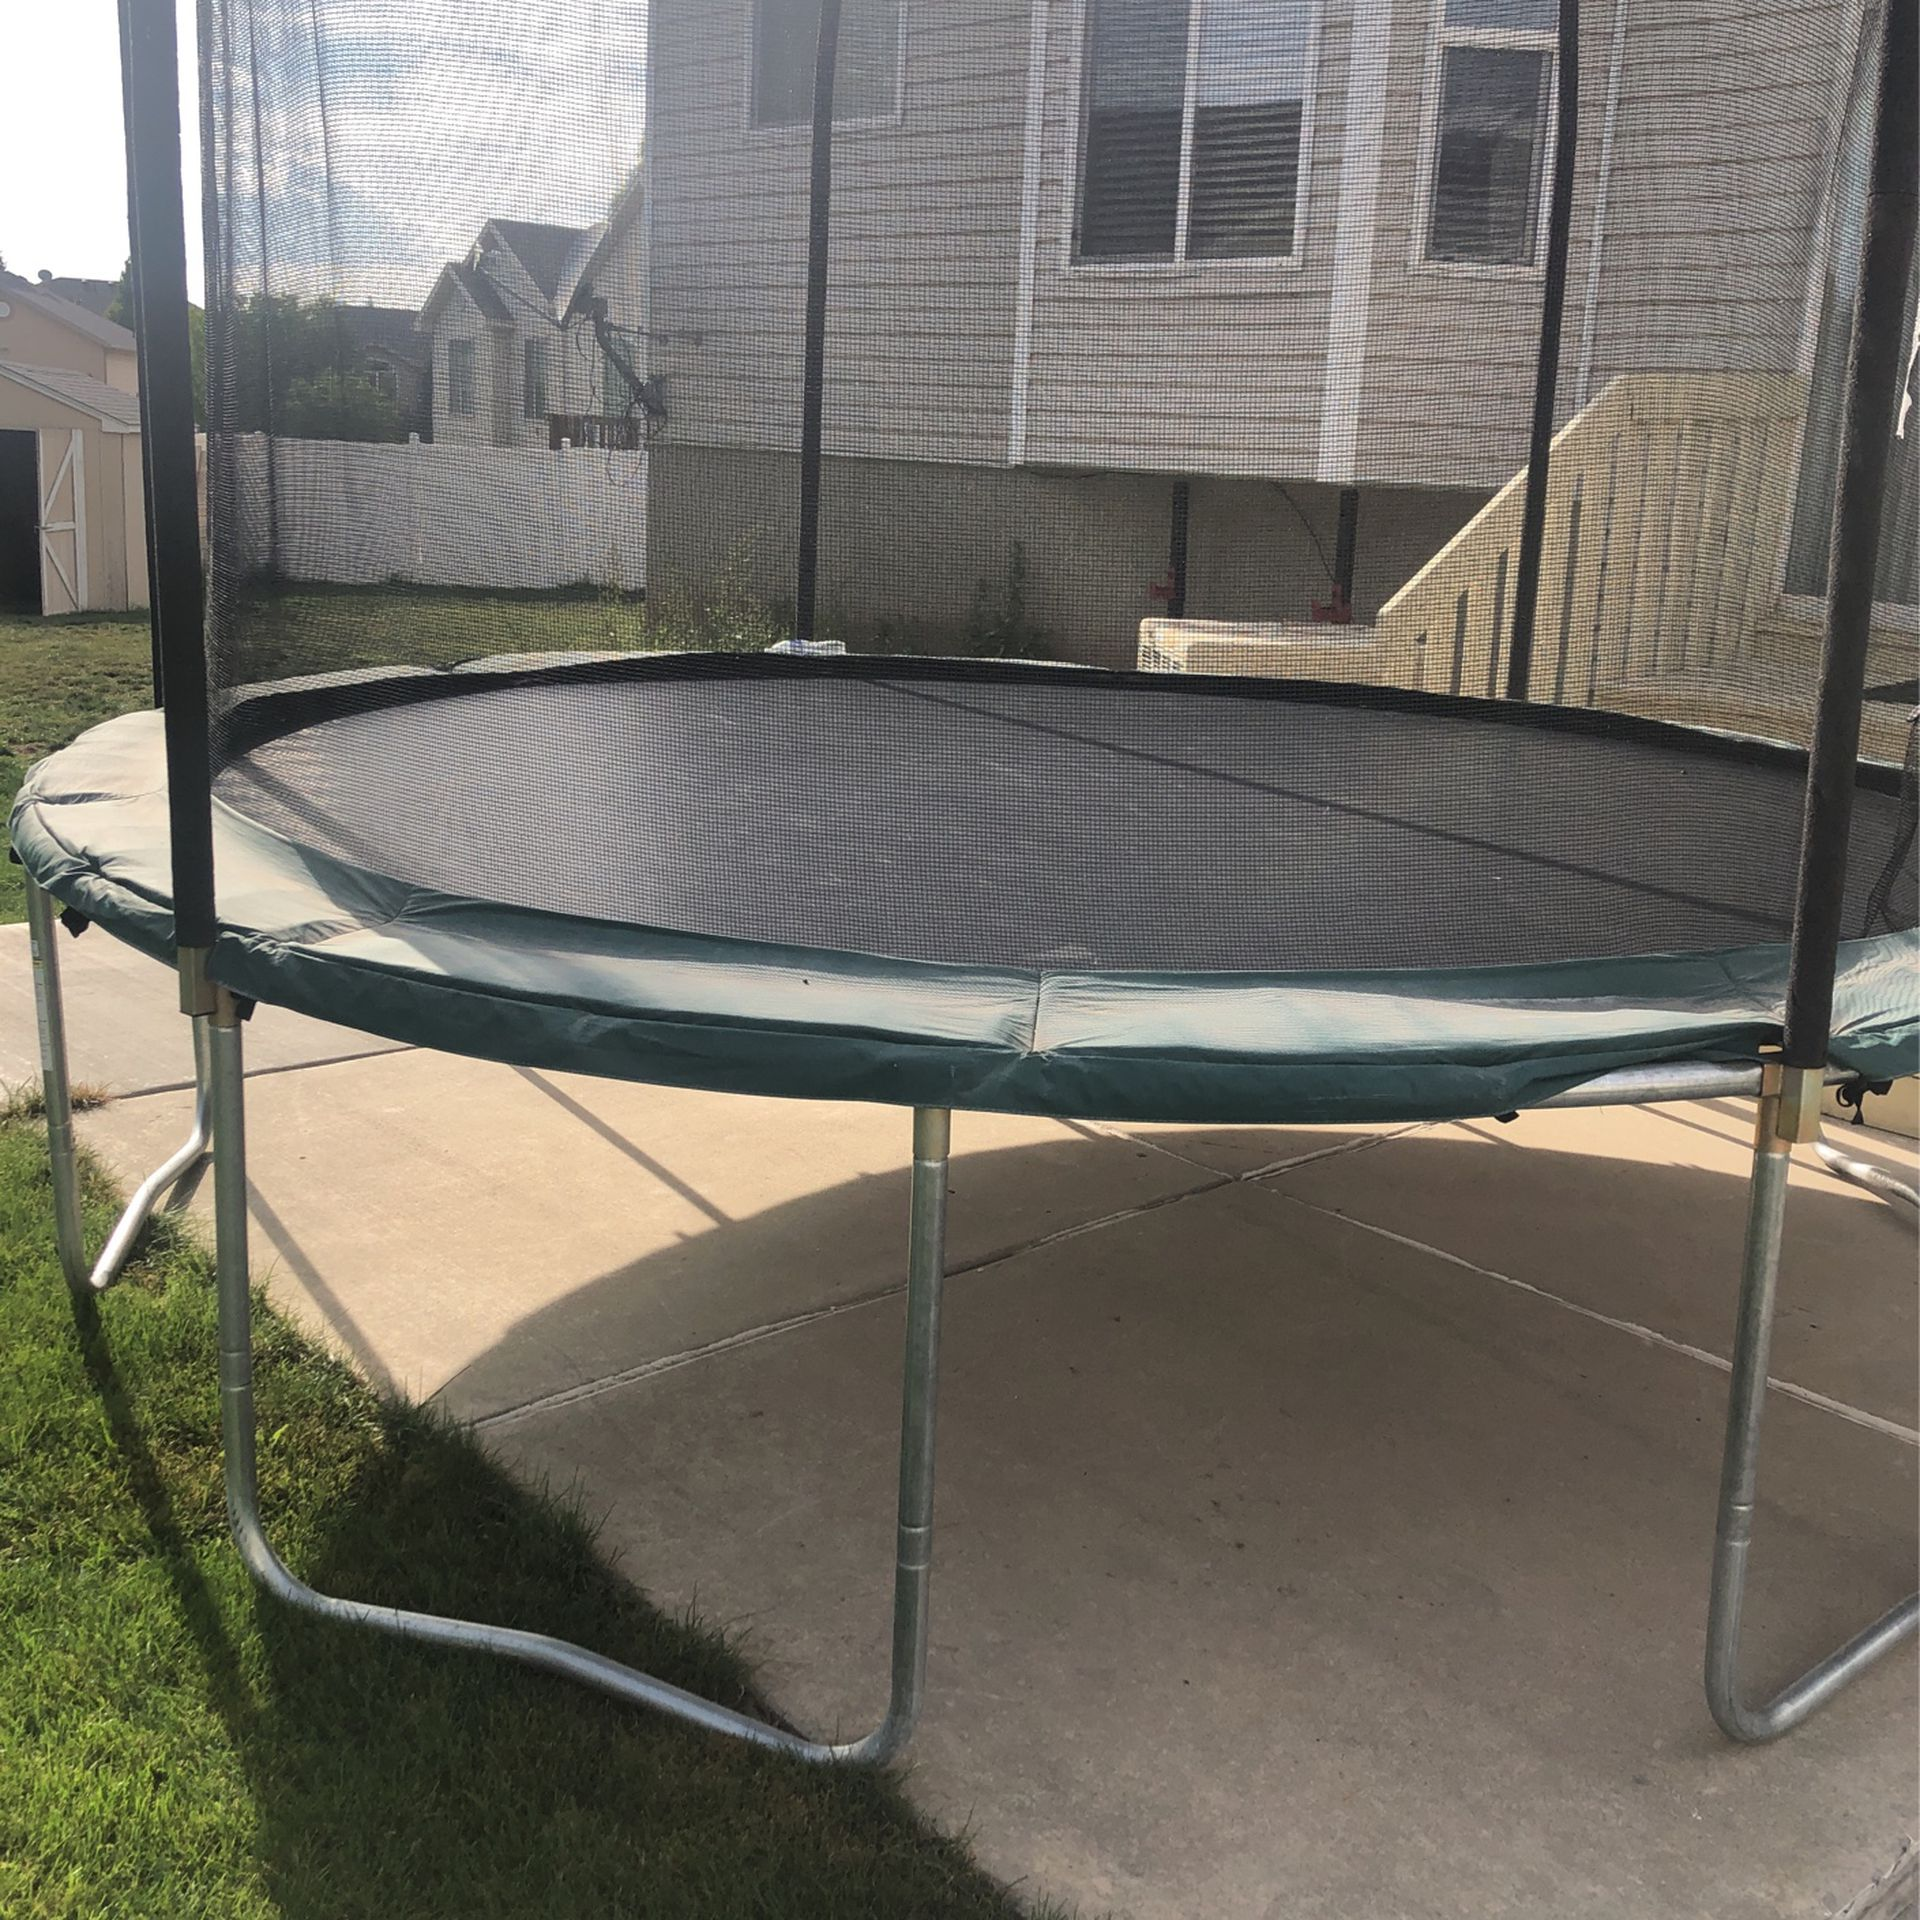 Trampoline 10ft Small